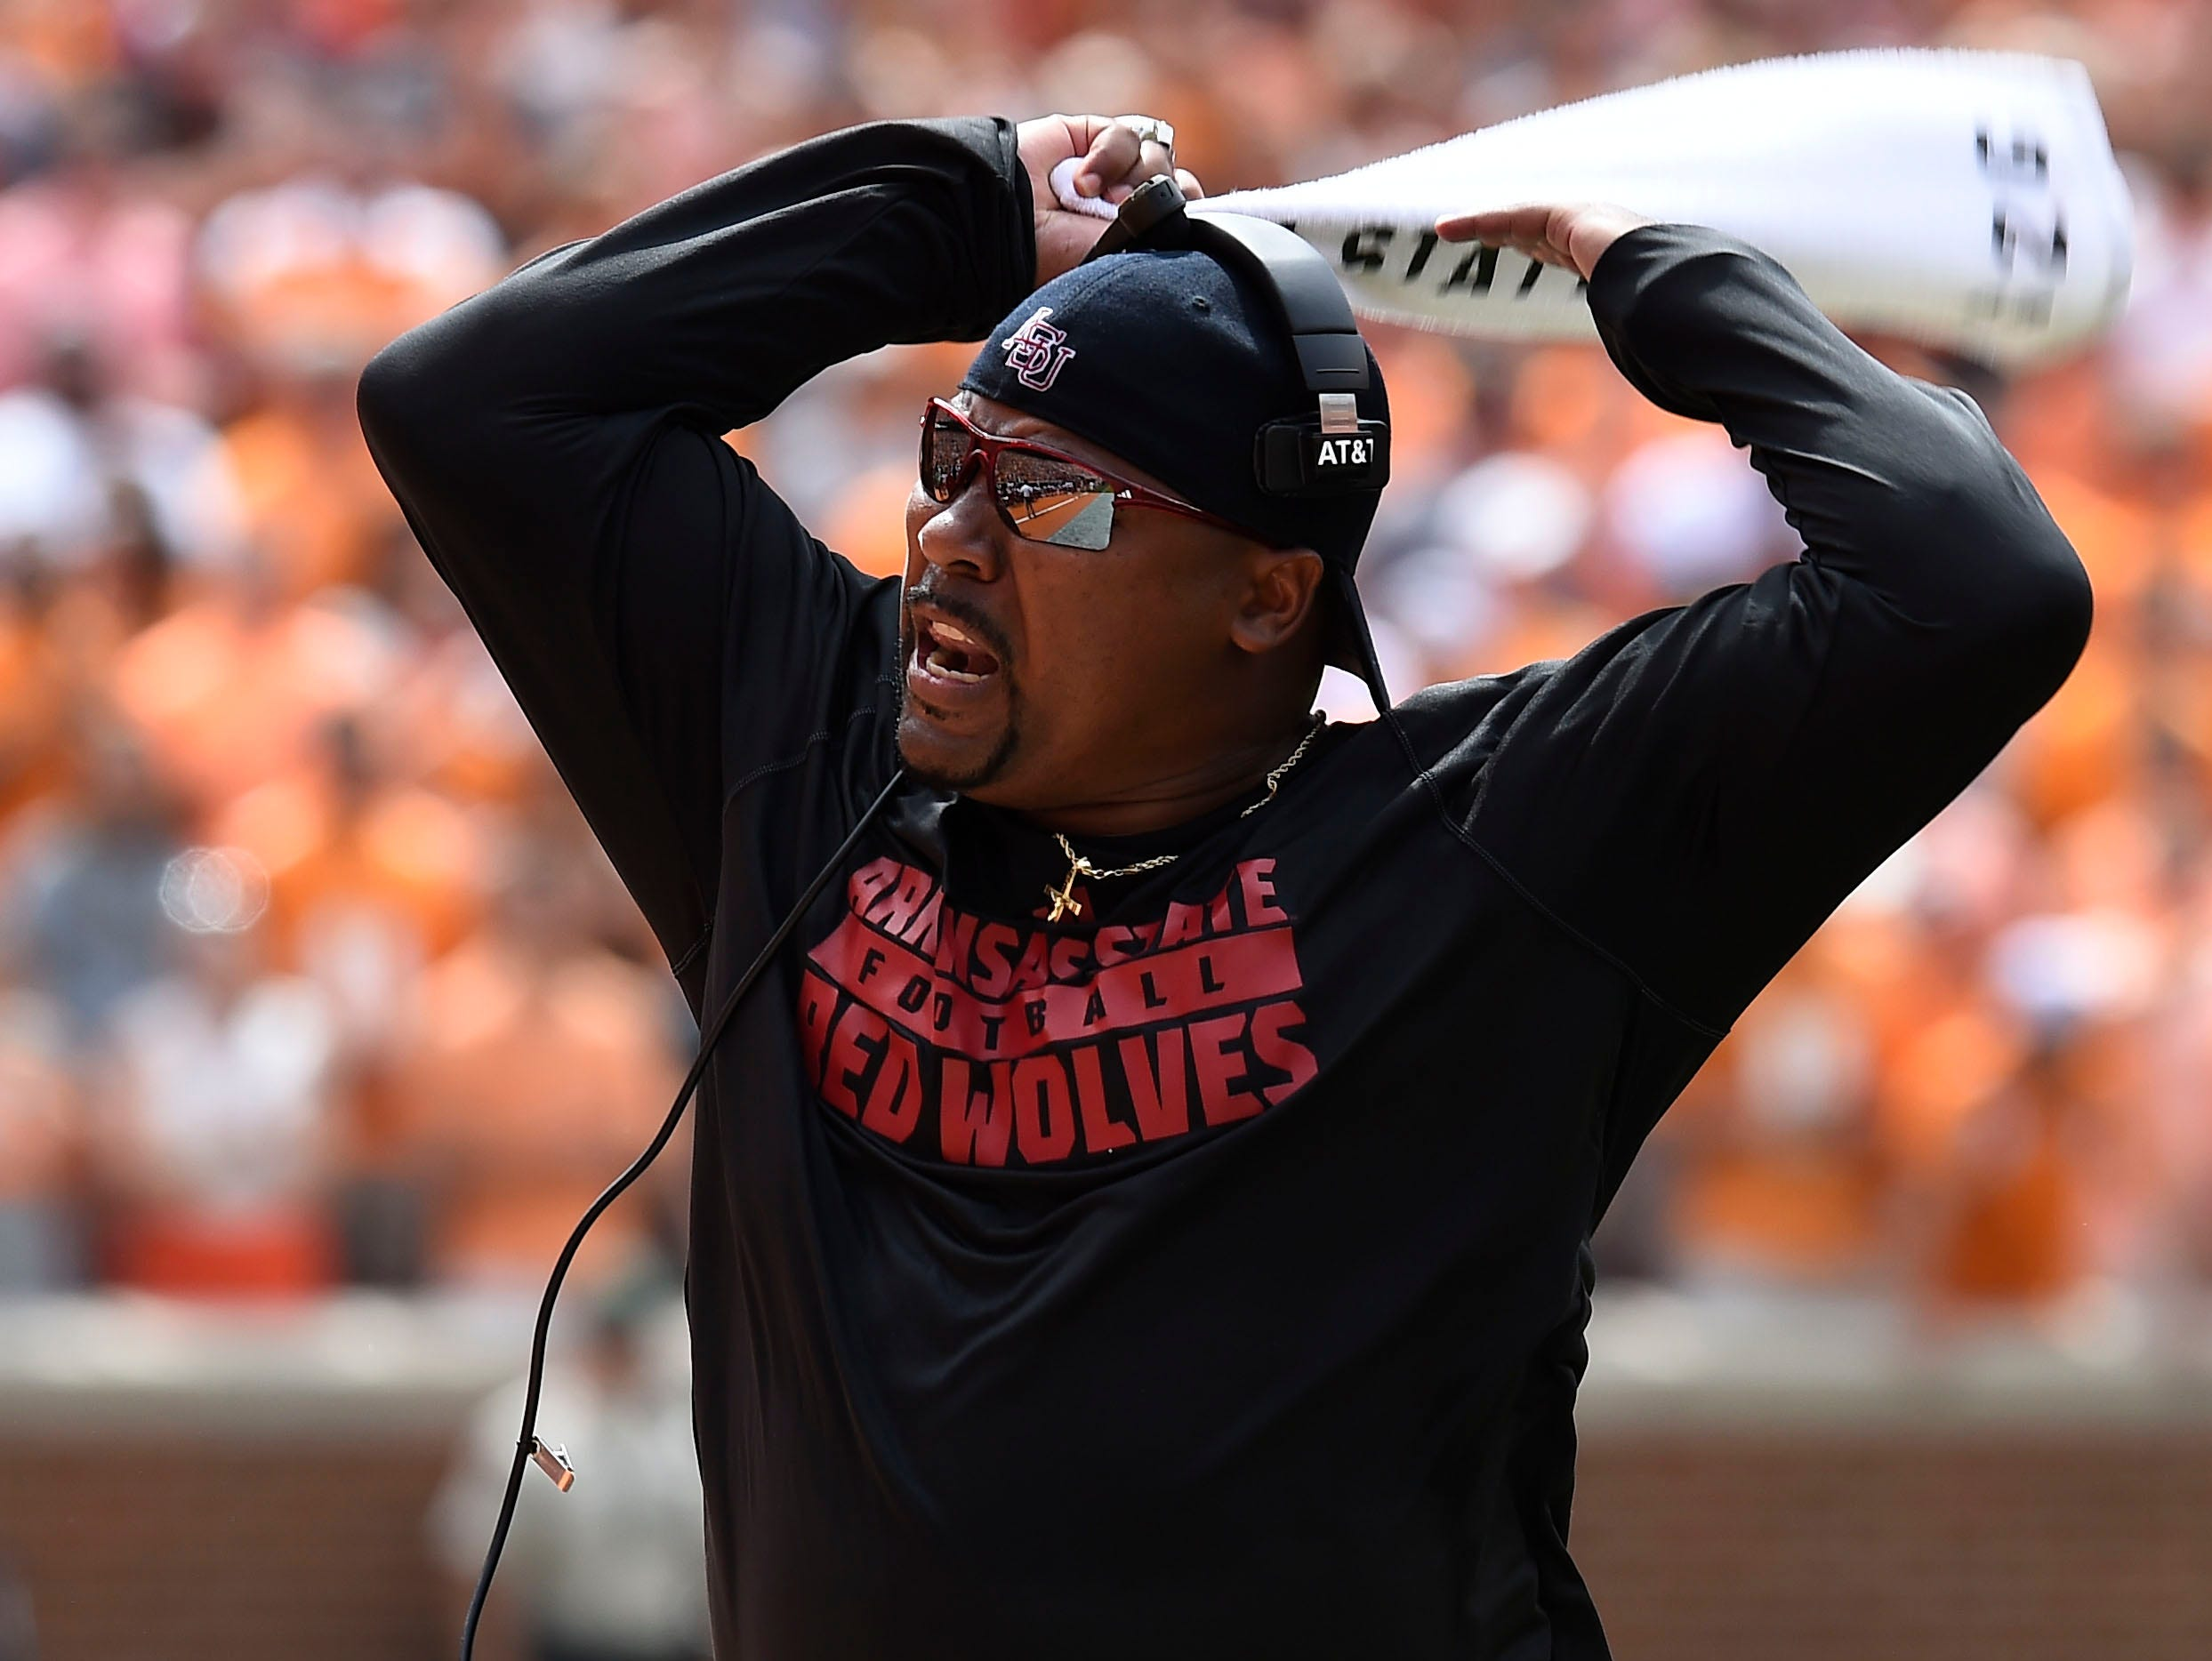 Former Tennessee assistant coach and current Arkansas State assistant coach Trooper Taylor motions to his players at Neyland Stadium, Saturday, Sept. 6, 2014 in Knoxville, Tenn.  (AMY SMOTHERMAN BURGESS/NEWS SENTINEL)